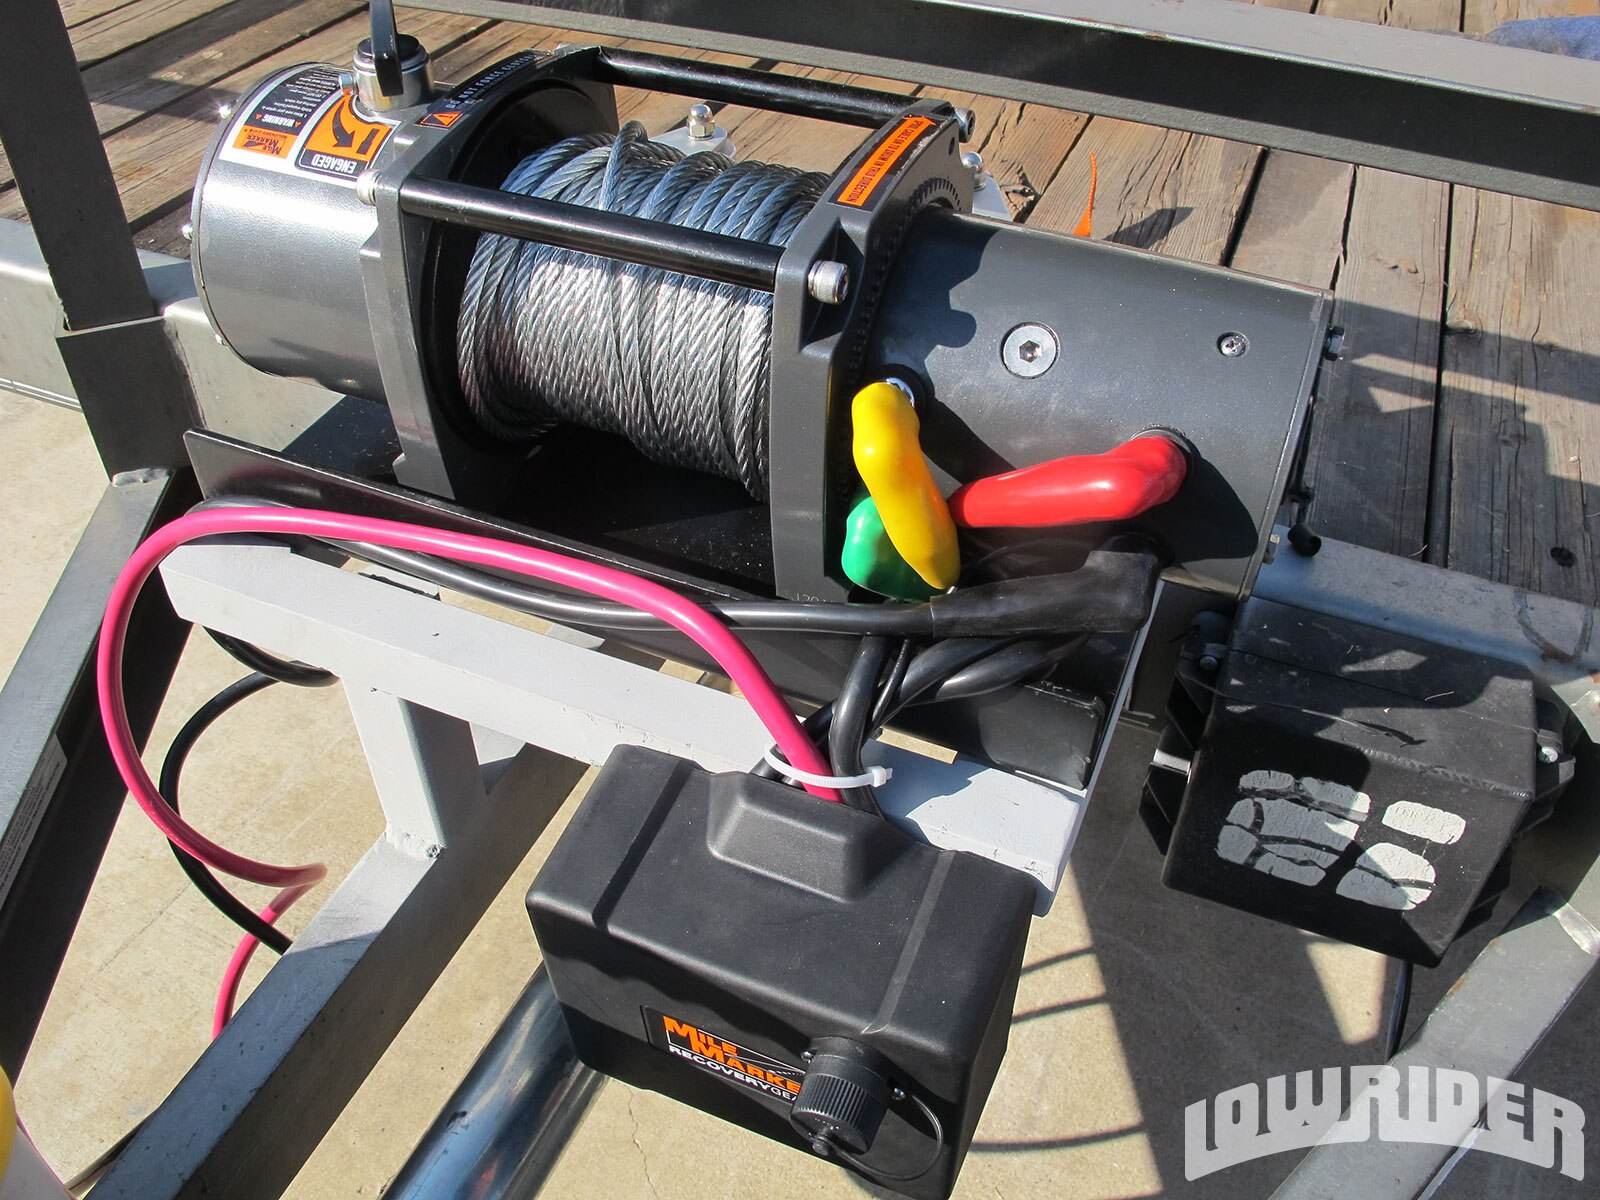 smittybilt winch solenoid wiring diagram contactor and overload single phase mile marker somurich